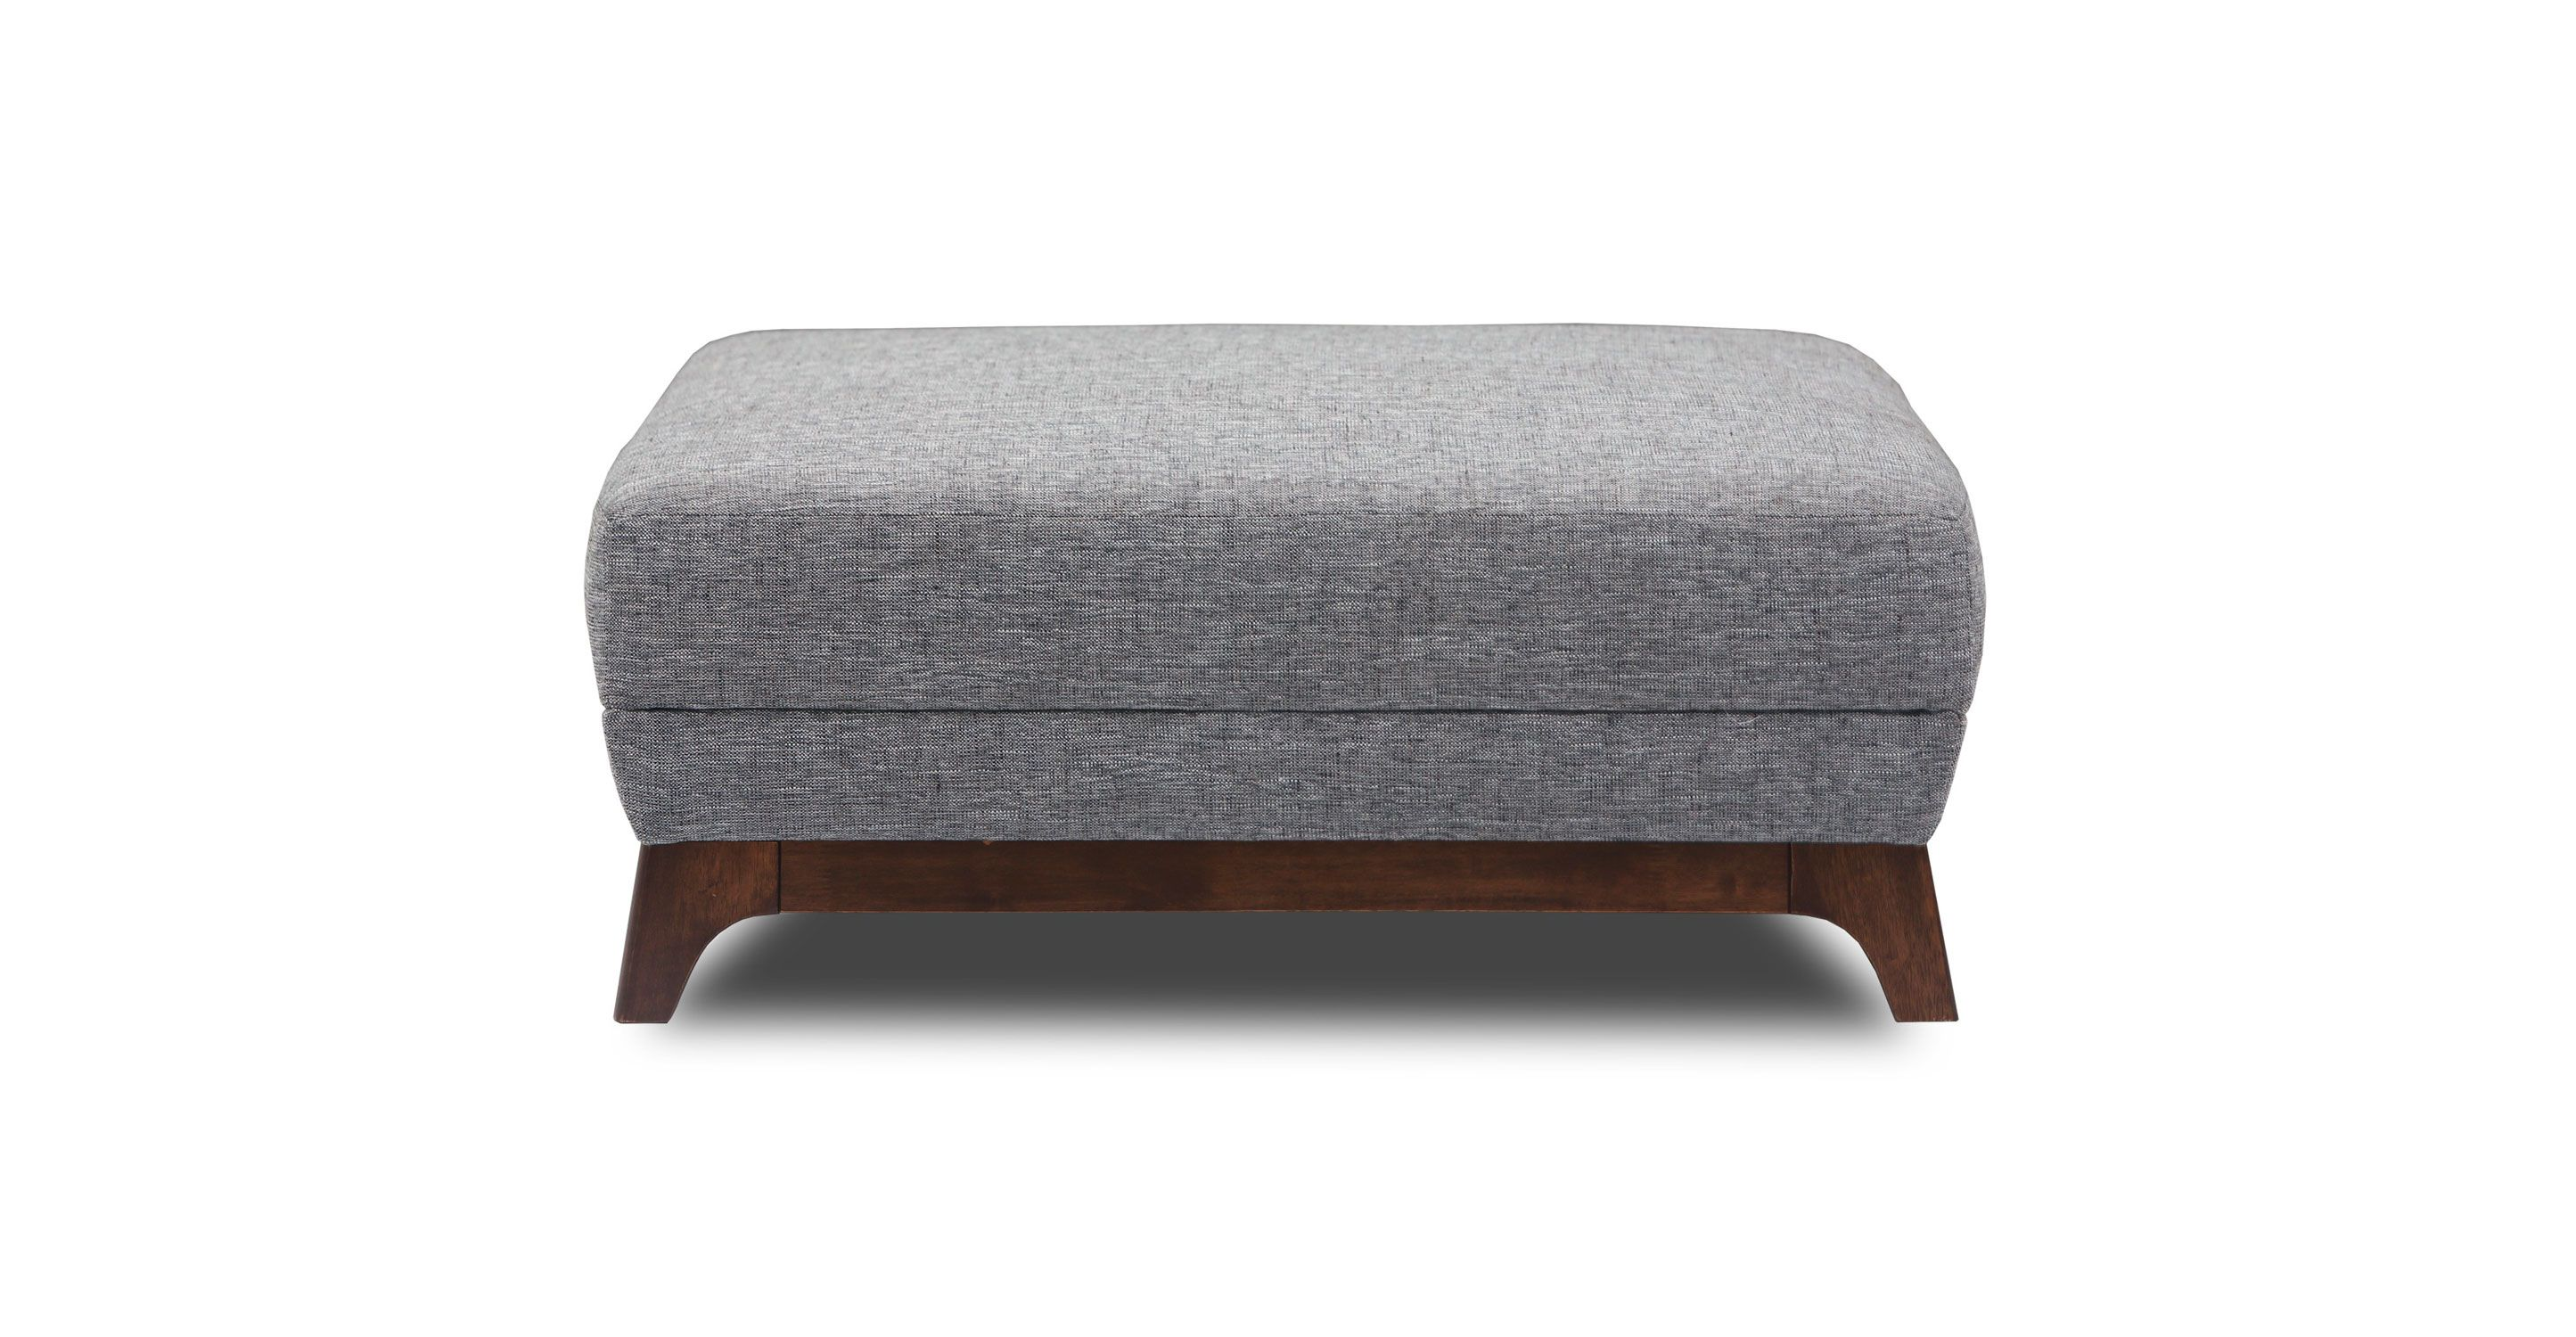 gray ottoman with solid wood legs  article ceni modern furniture  - gray ottoman with solid wood legs  article ceni modern furniture